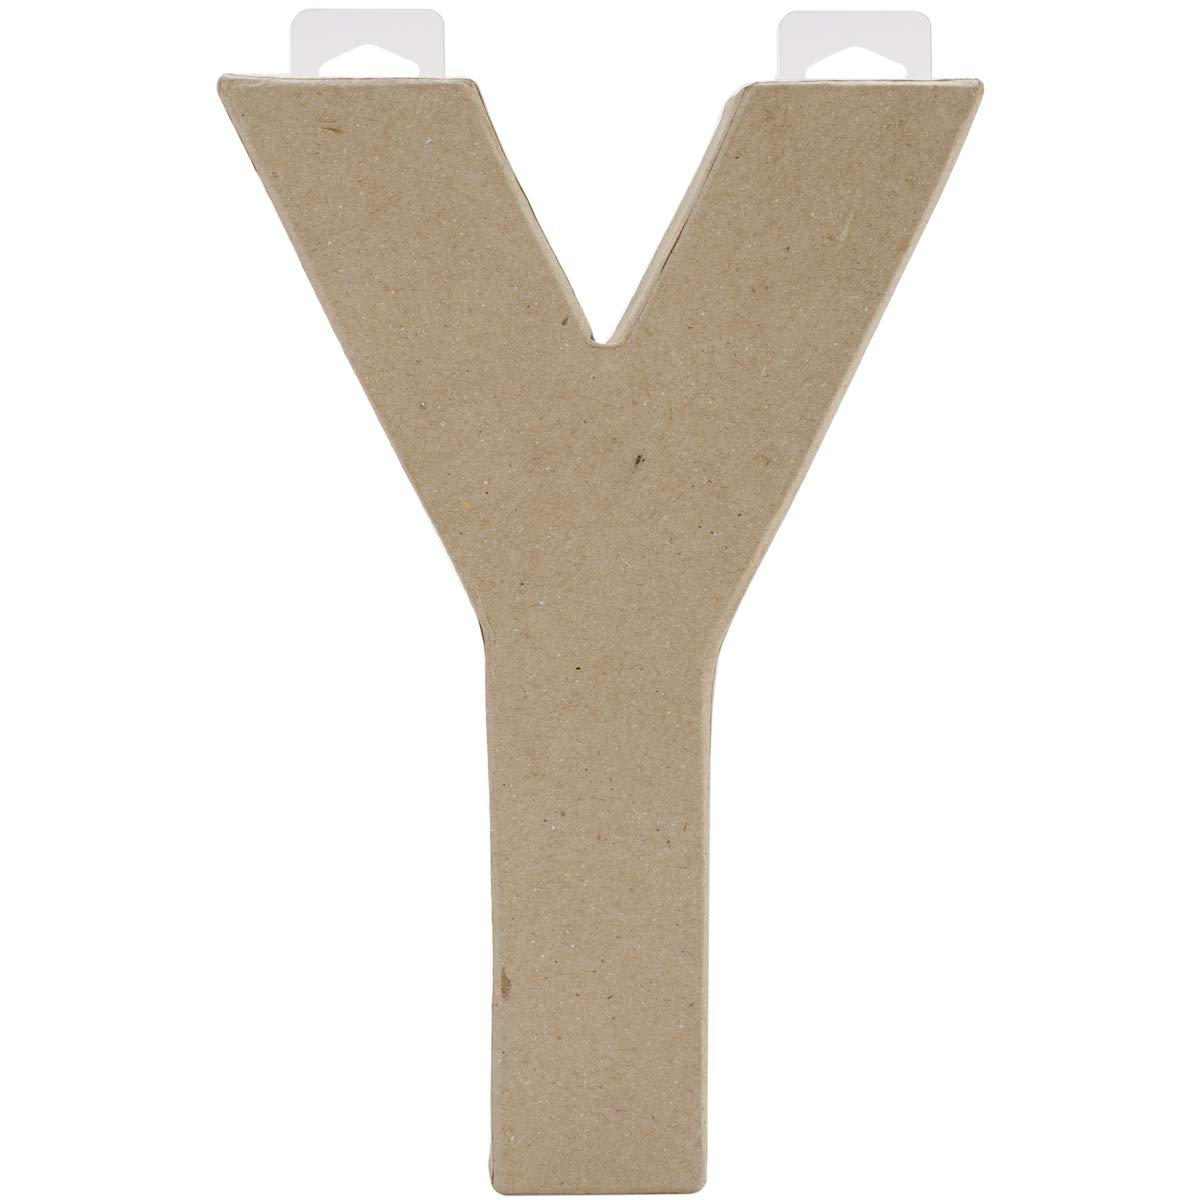 Paper Mache Letter Y 8 X 5.5 Inches (4 Pack)